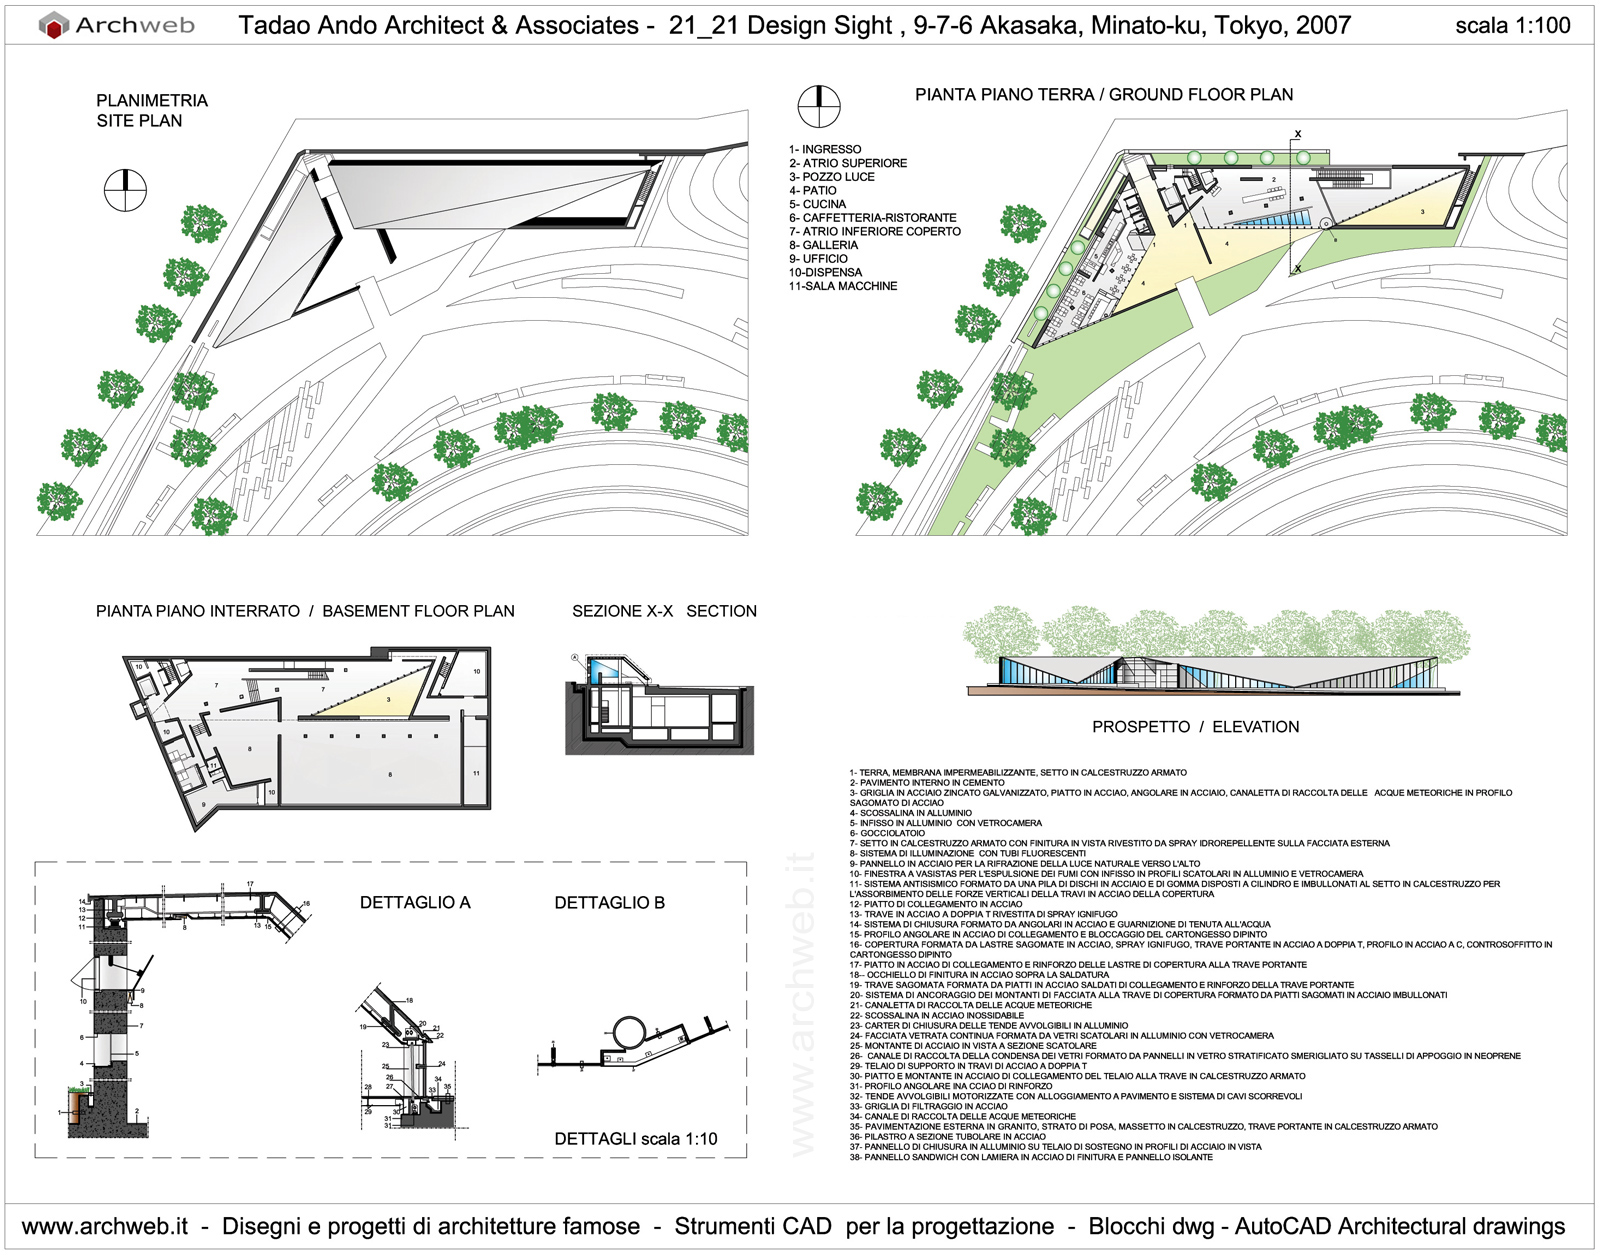 Tadao Ando 2121 Design Sight Drawings Plan